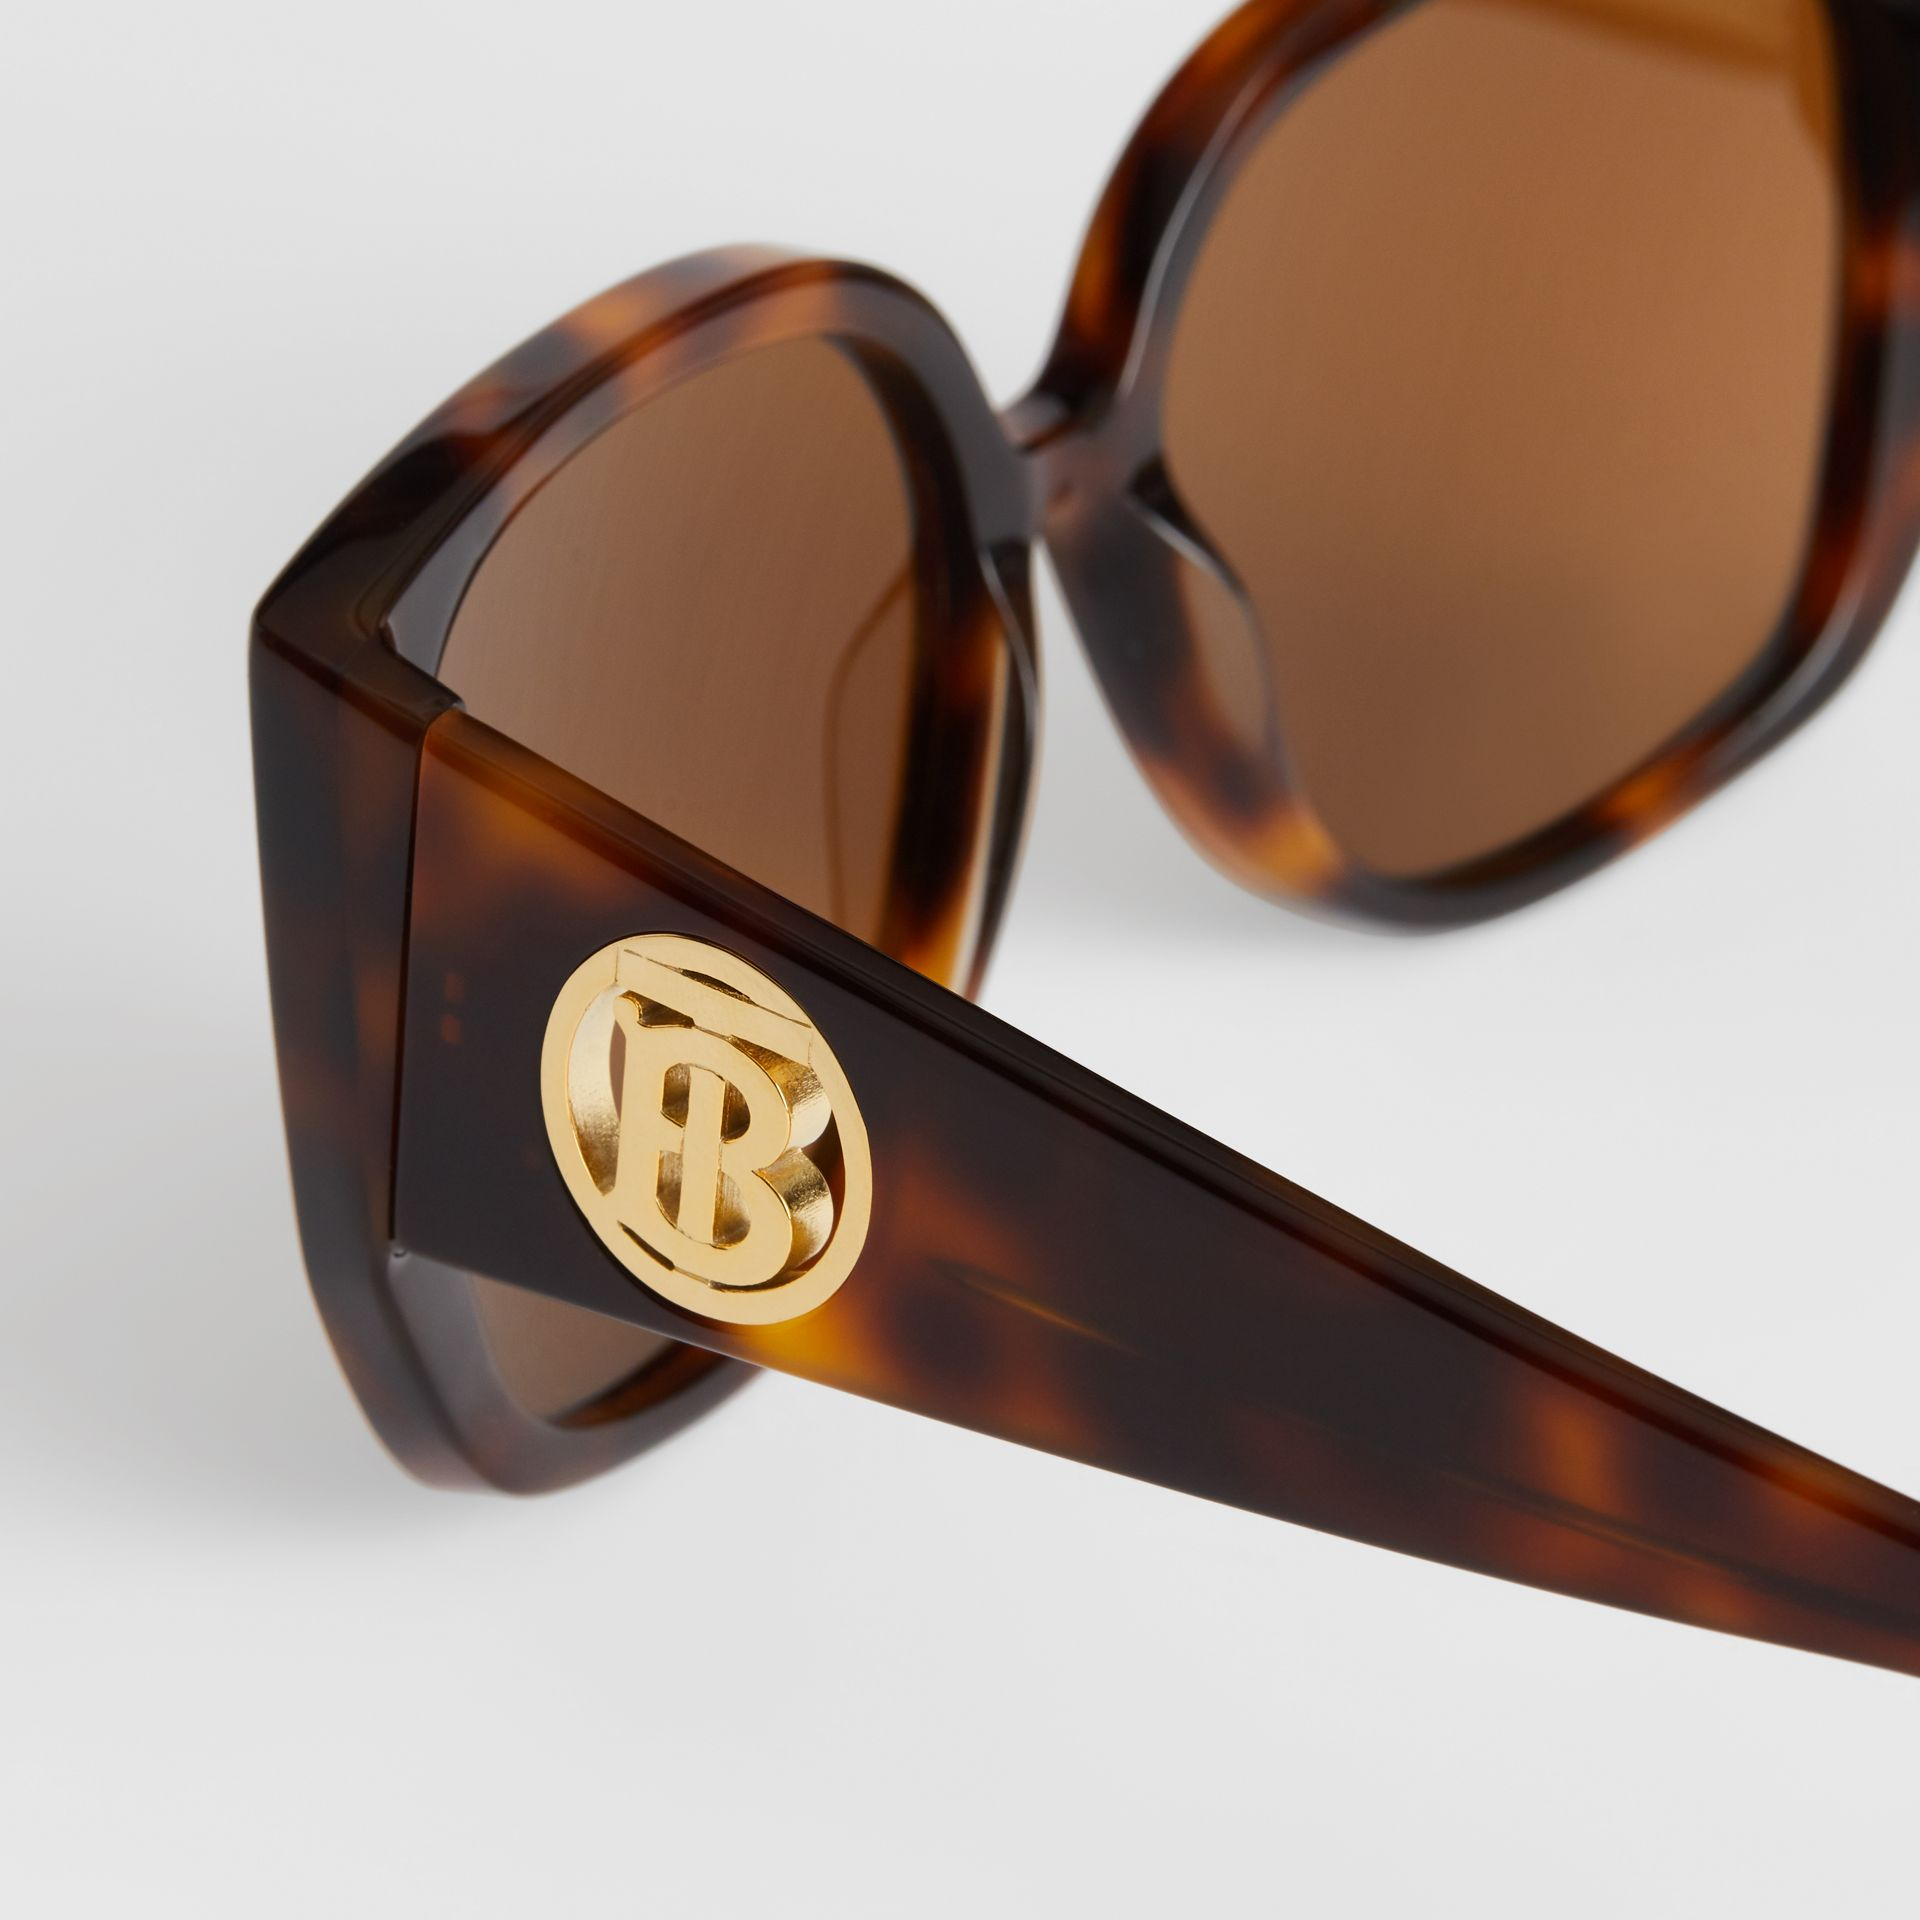 Oversized Butterfly Frame Sunglasses in Tortoiseshell - Women | Burberry Singapore - gallery image 1